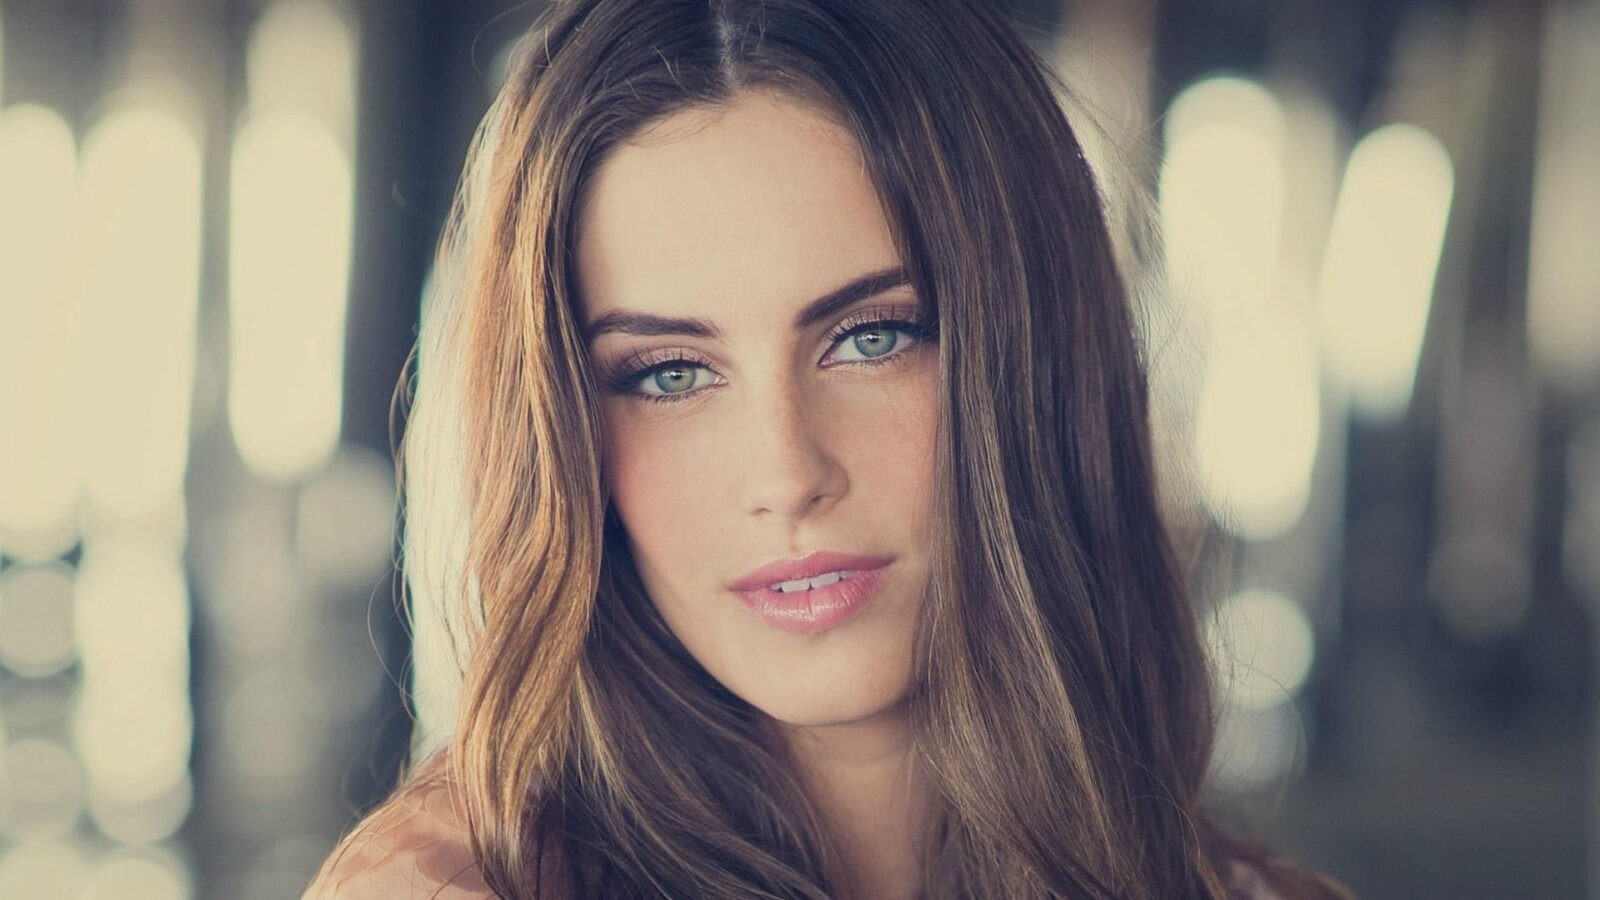 1080p Wallpaper Jessica Lowndes face, lips, eyes